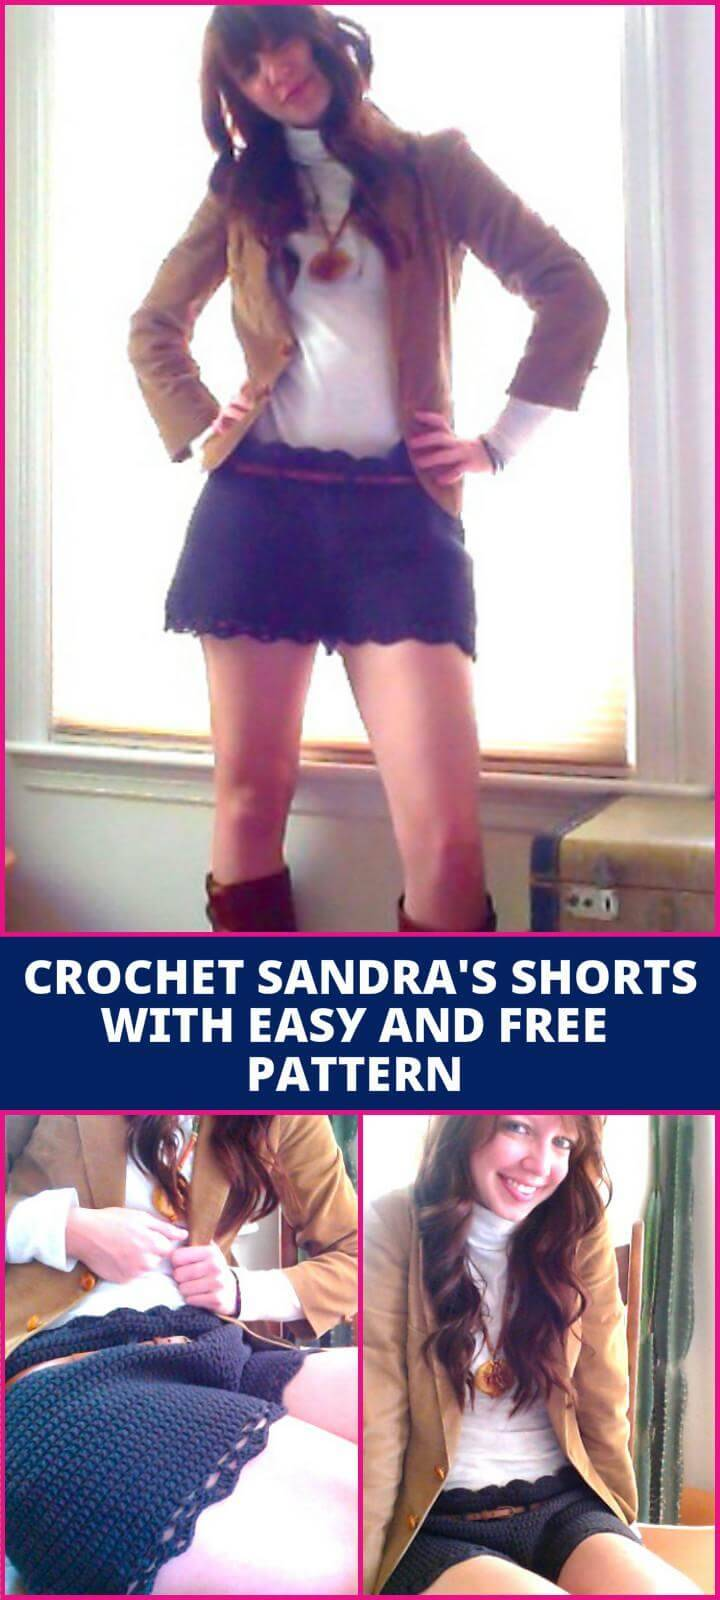 Crochet Sandra's Shorts with easy and Free Pattern